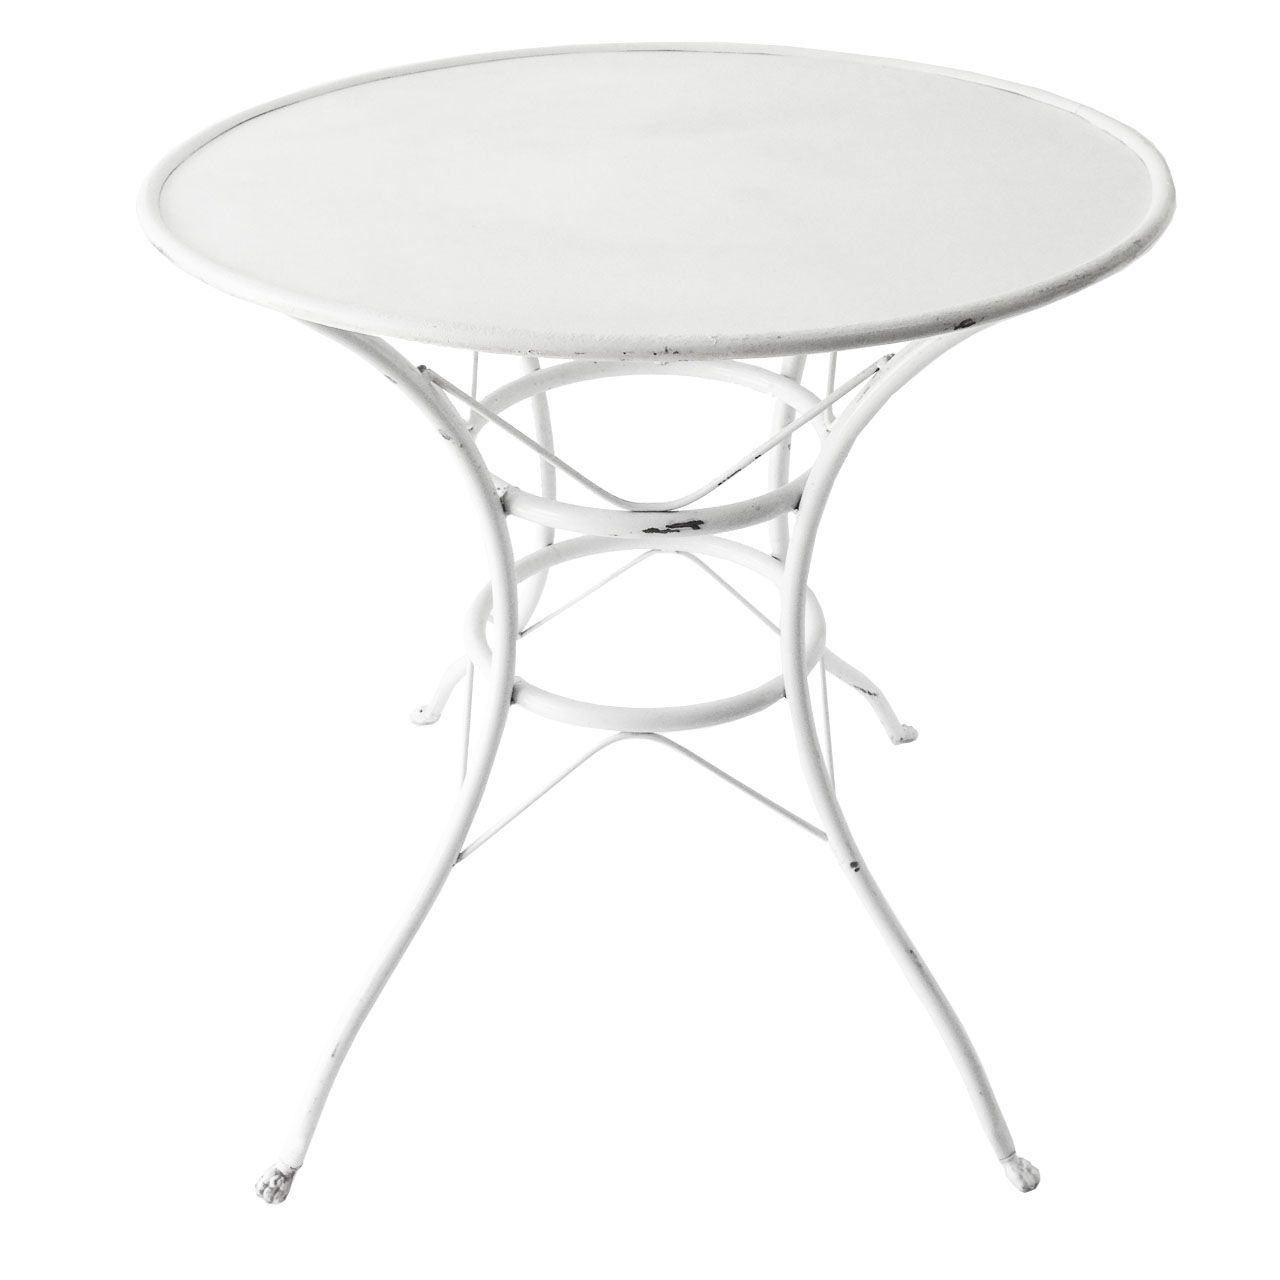 Antique French White Bistro Dining Table Chairish : antique french white bistro dining table 9813aspectfitampwidth640ampheight640 from www.chairish.com size 640 x 640 jpeg 16kB